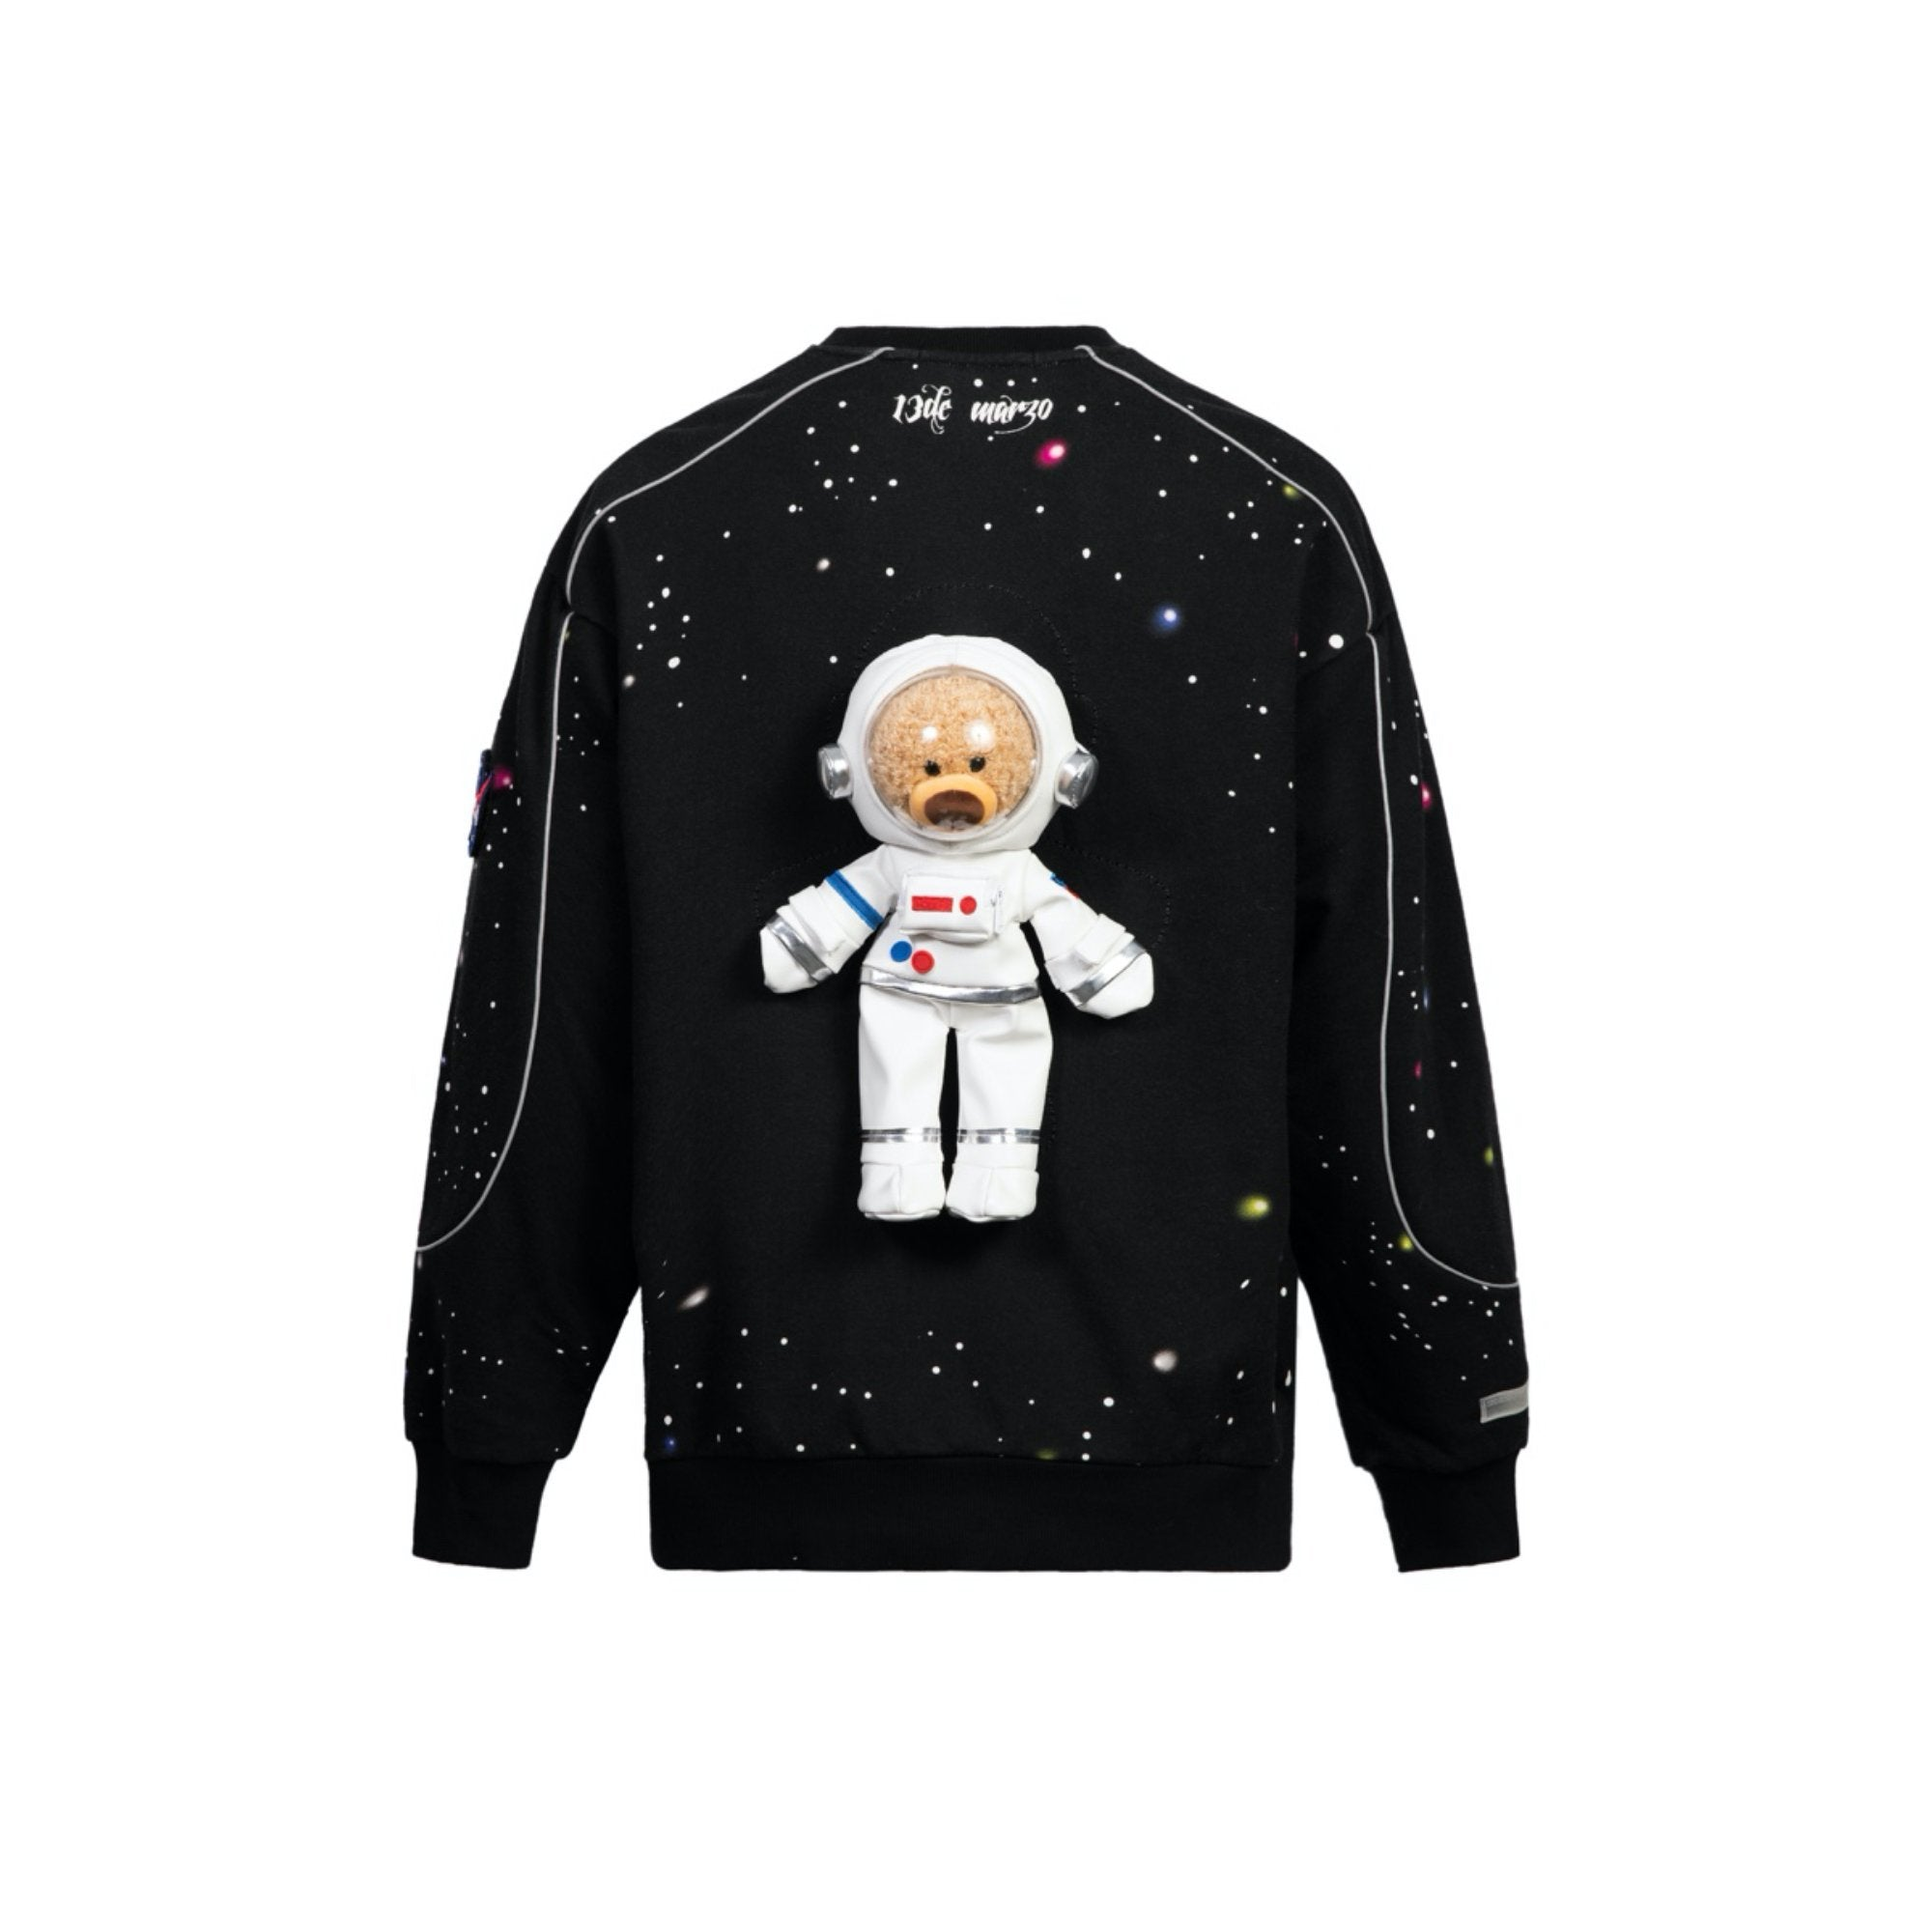 13 DE MARZO Astronaut Teddy Bear Galactic Starry Sweater Black | MADA IN CHINA